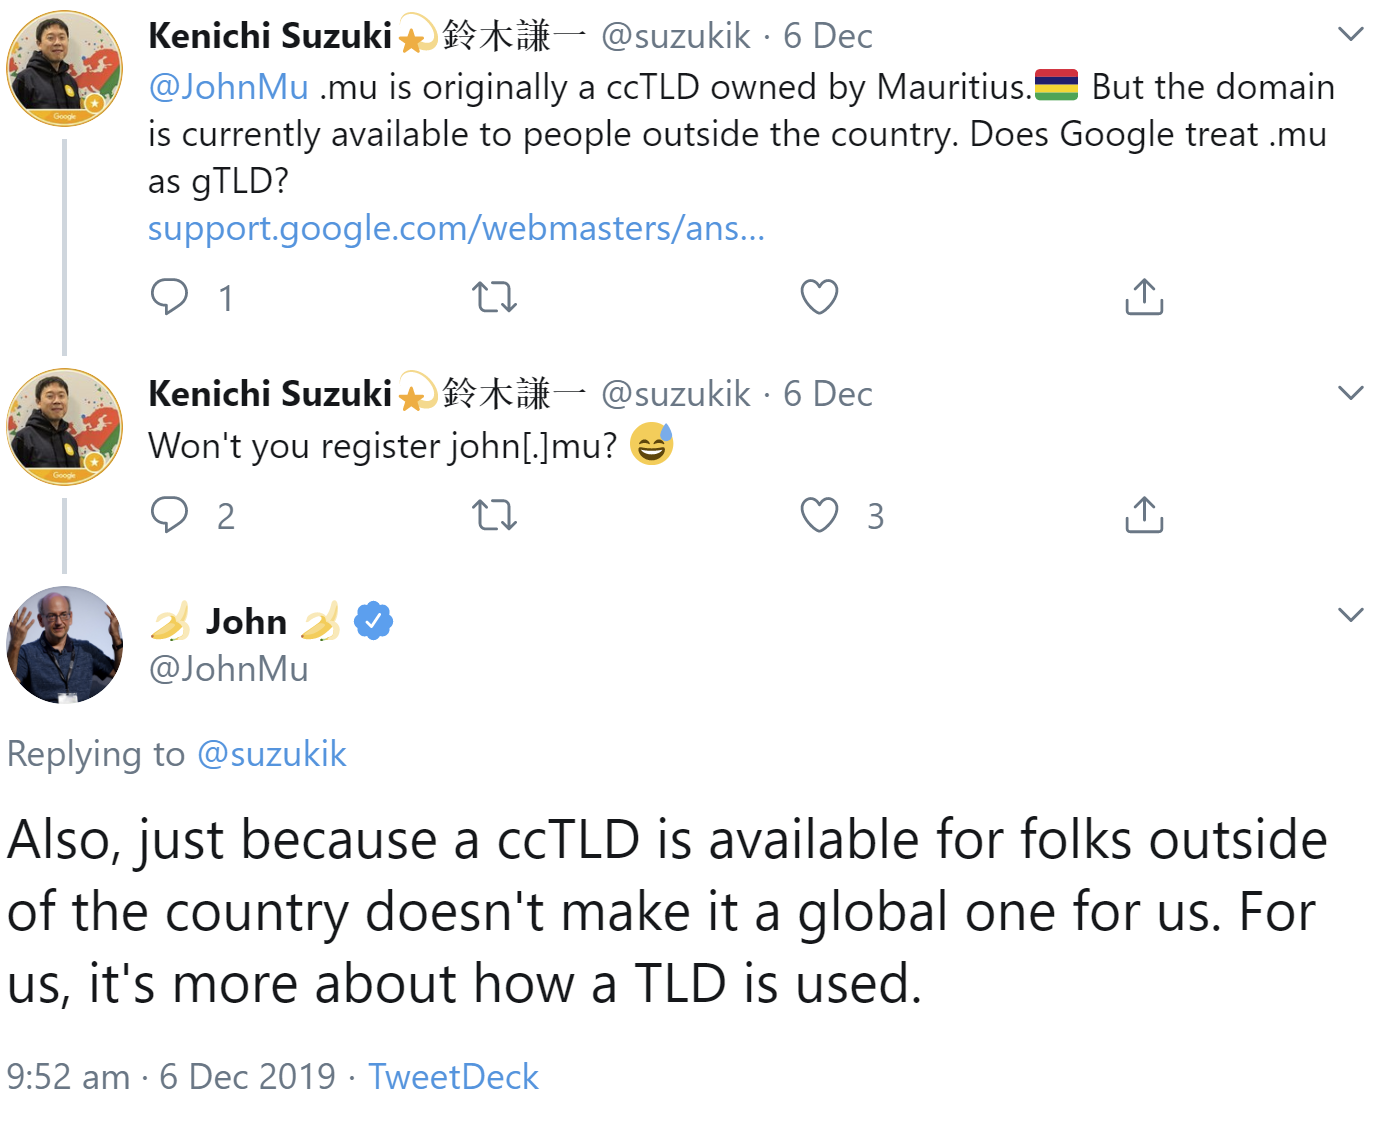 Google does not treat ccTLDs as gTLDs simply because they are available outside of their country